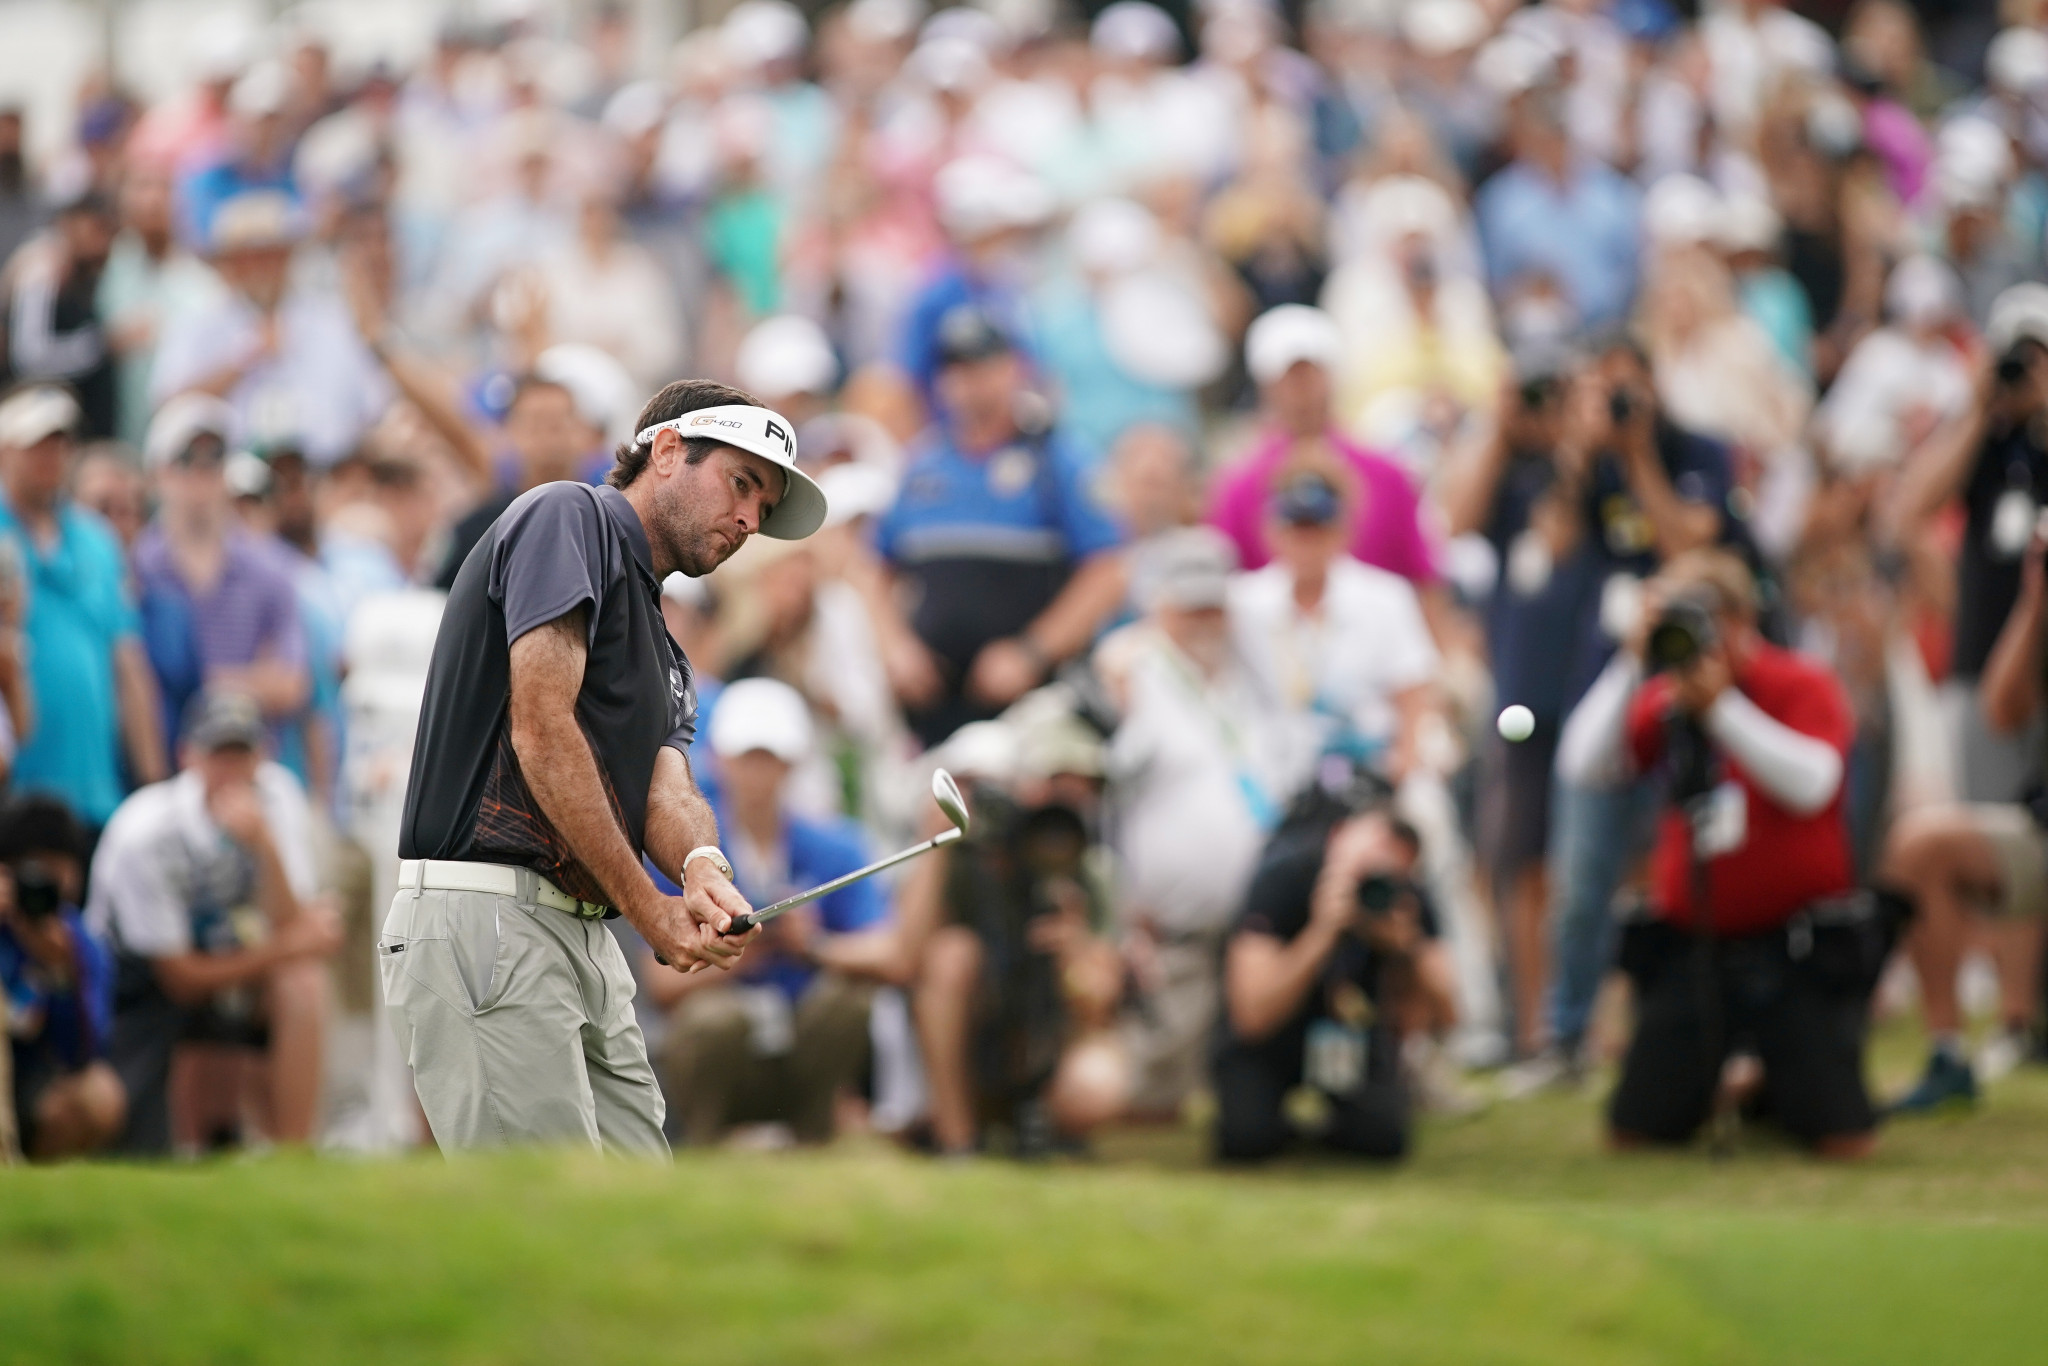 Bubba Watson clinched the WGC Match Play title in Austin ©Getty Images